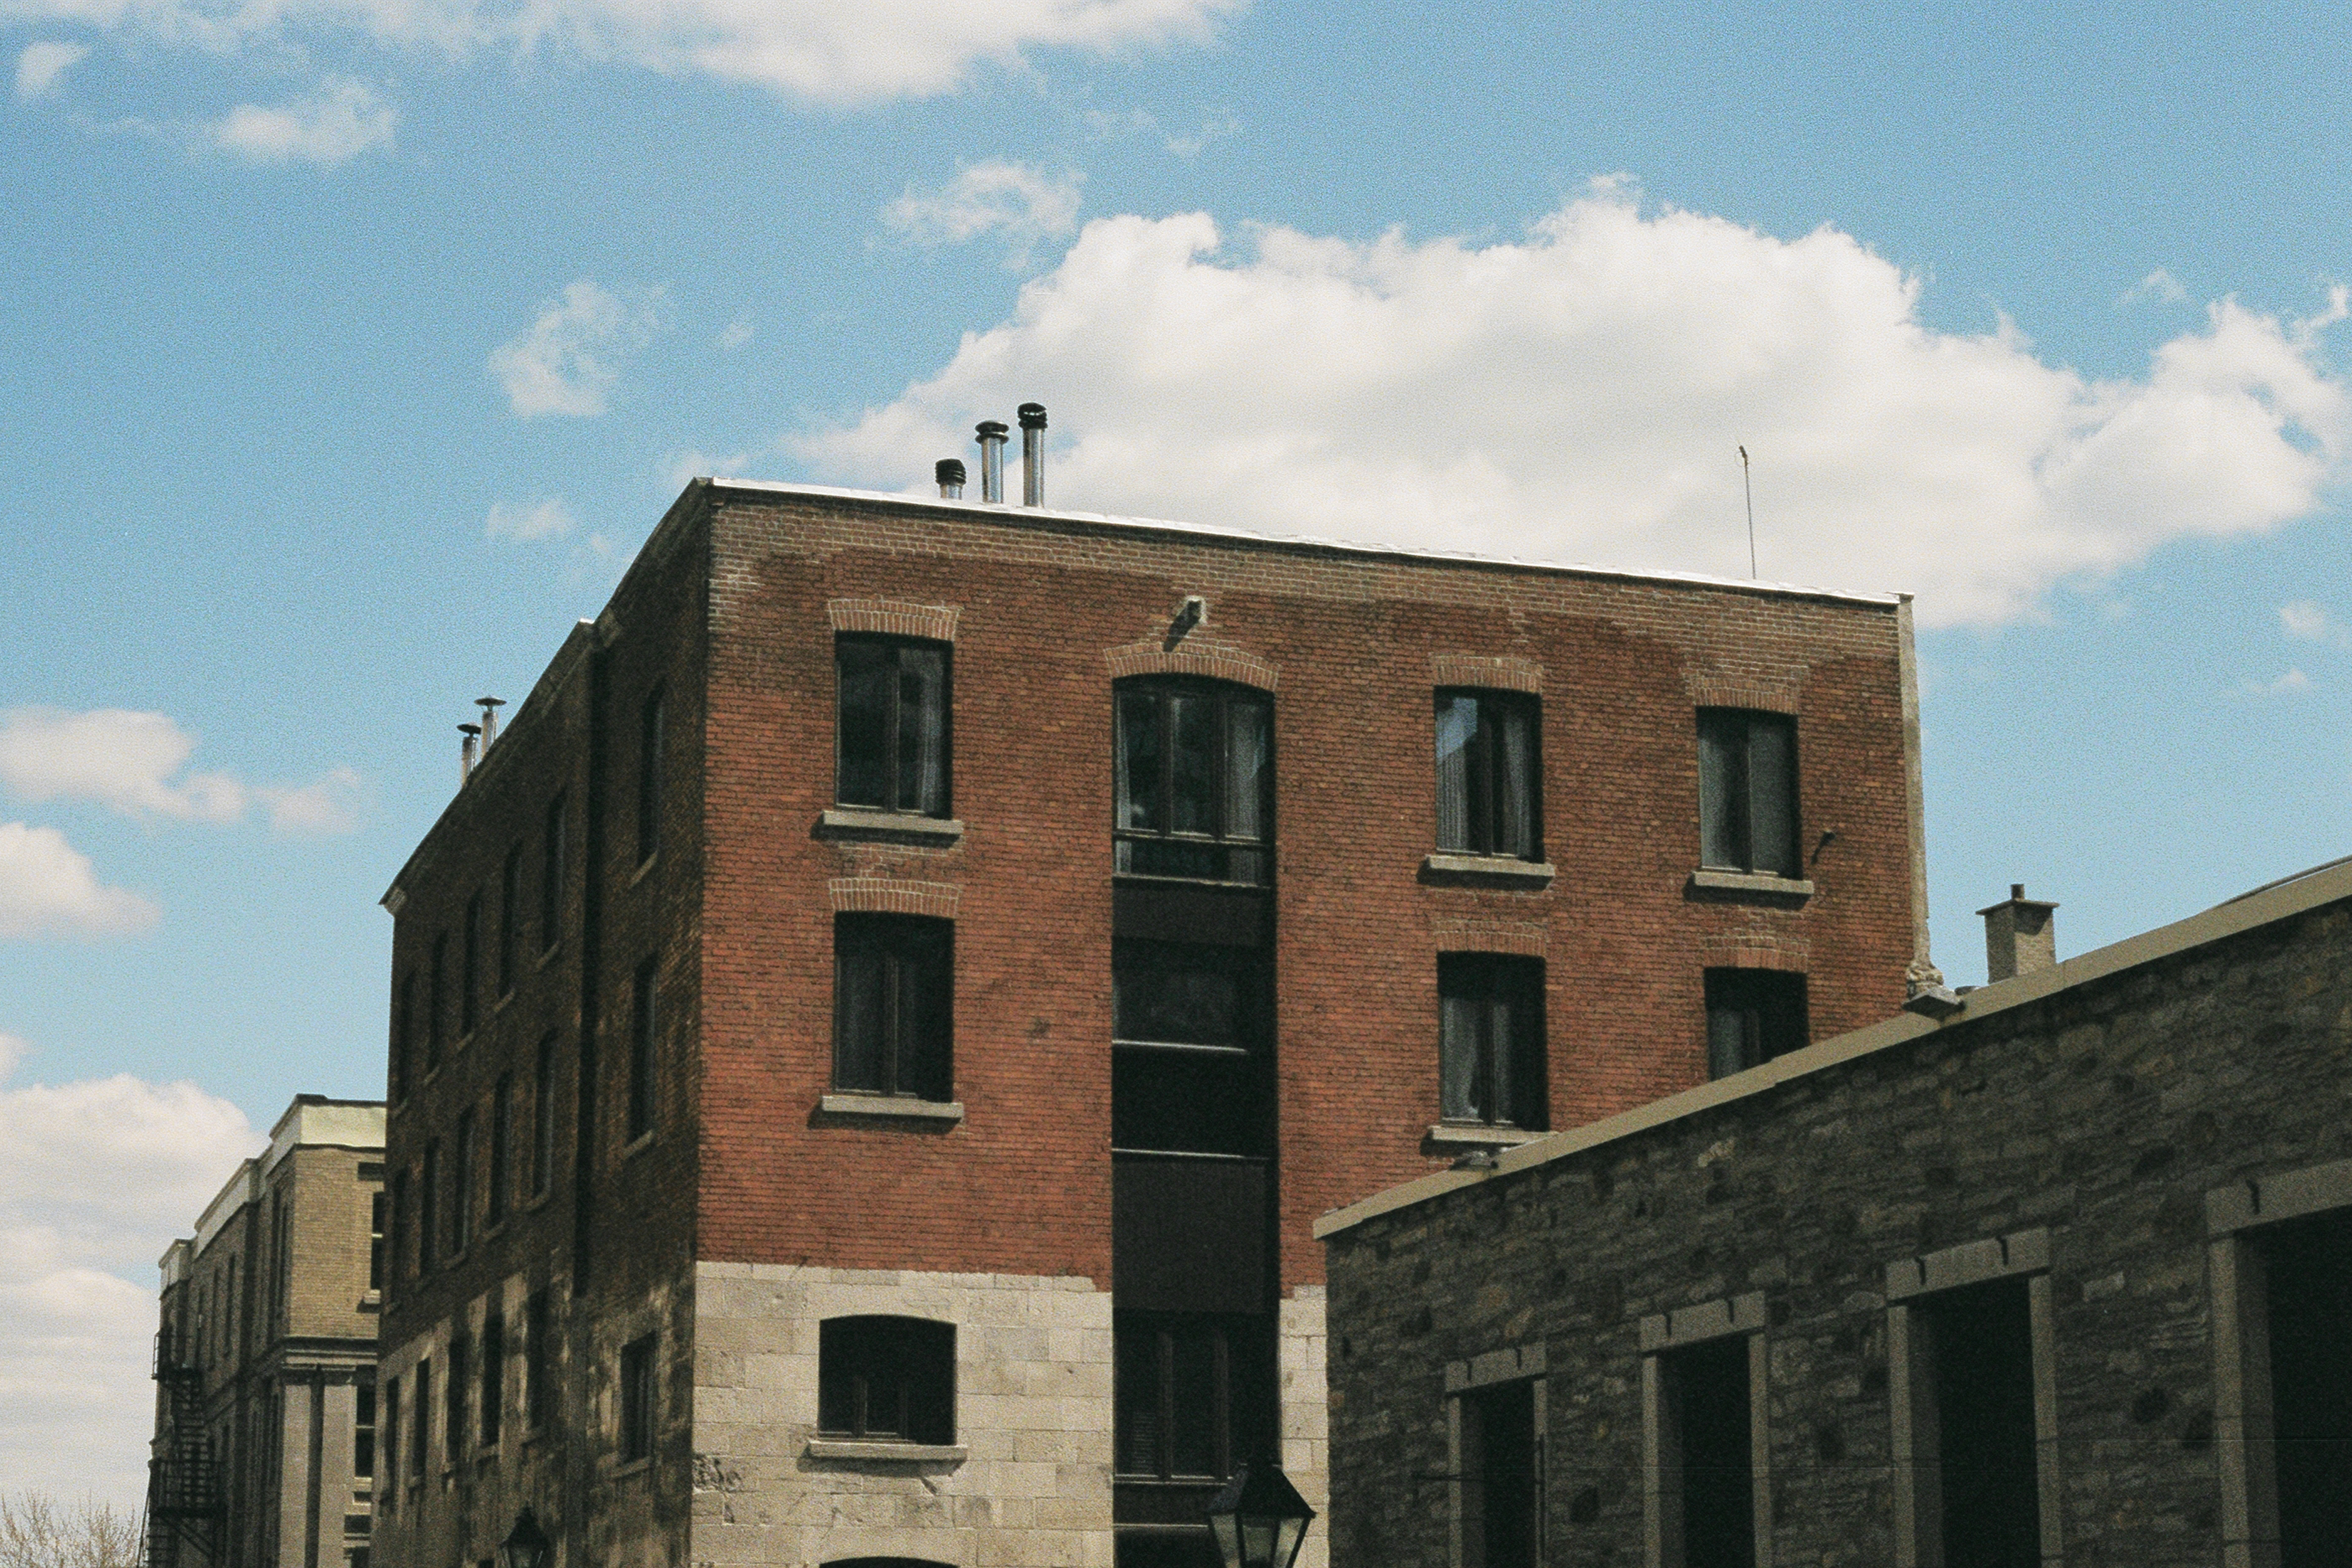 Old Building, Abandoned, Brown, Building, Cloud, HQ Photo